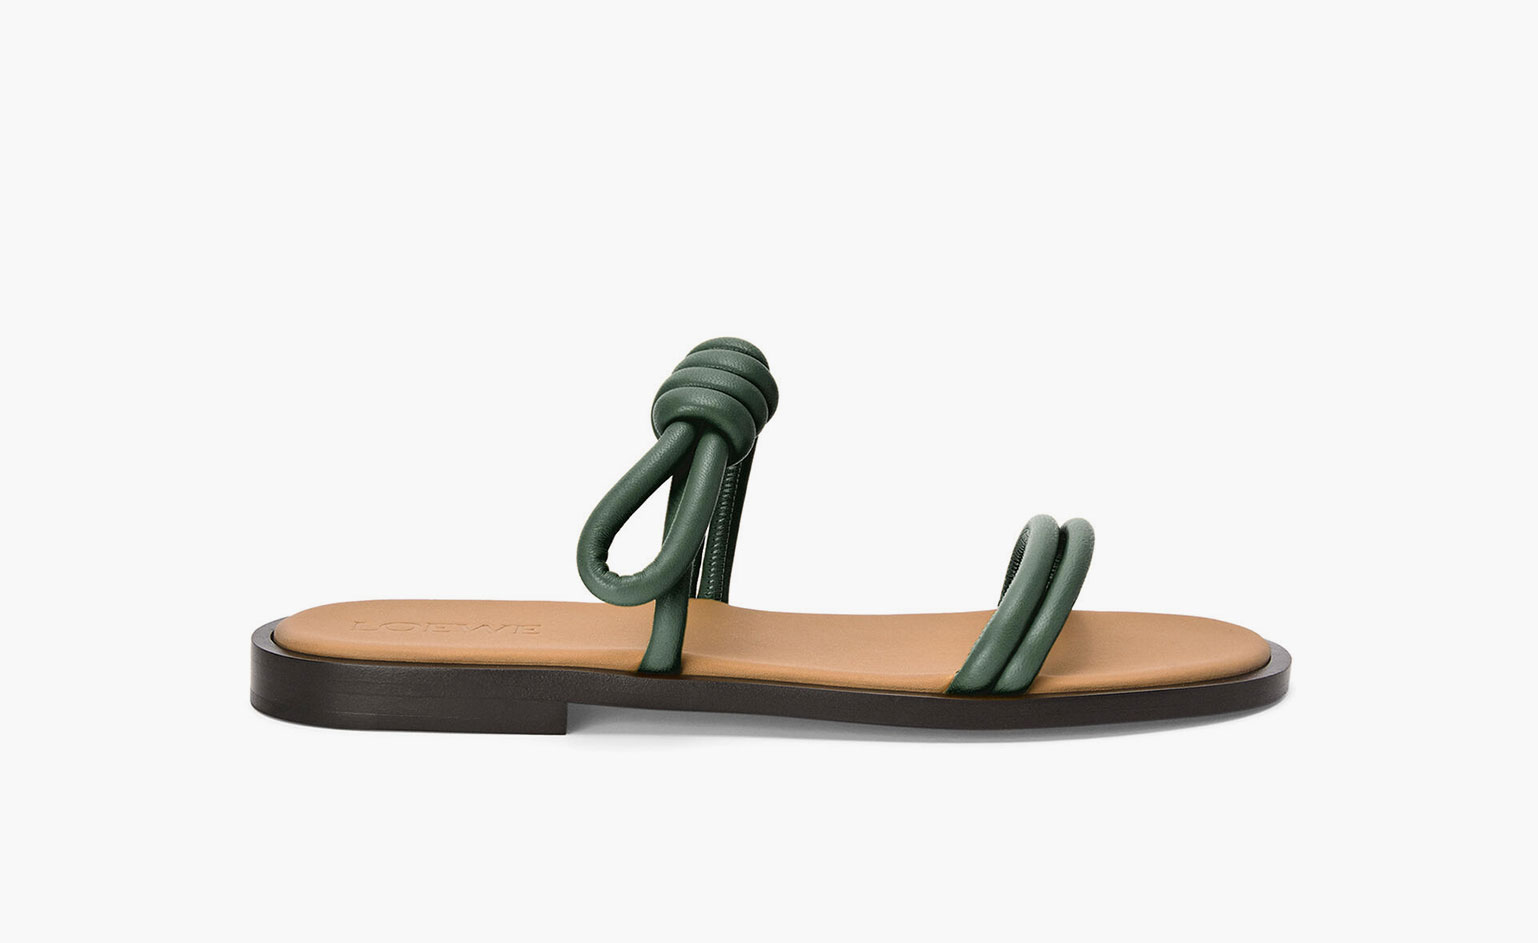 Summer sandals in khaki leather with toggle detail by Loewe